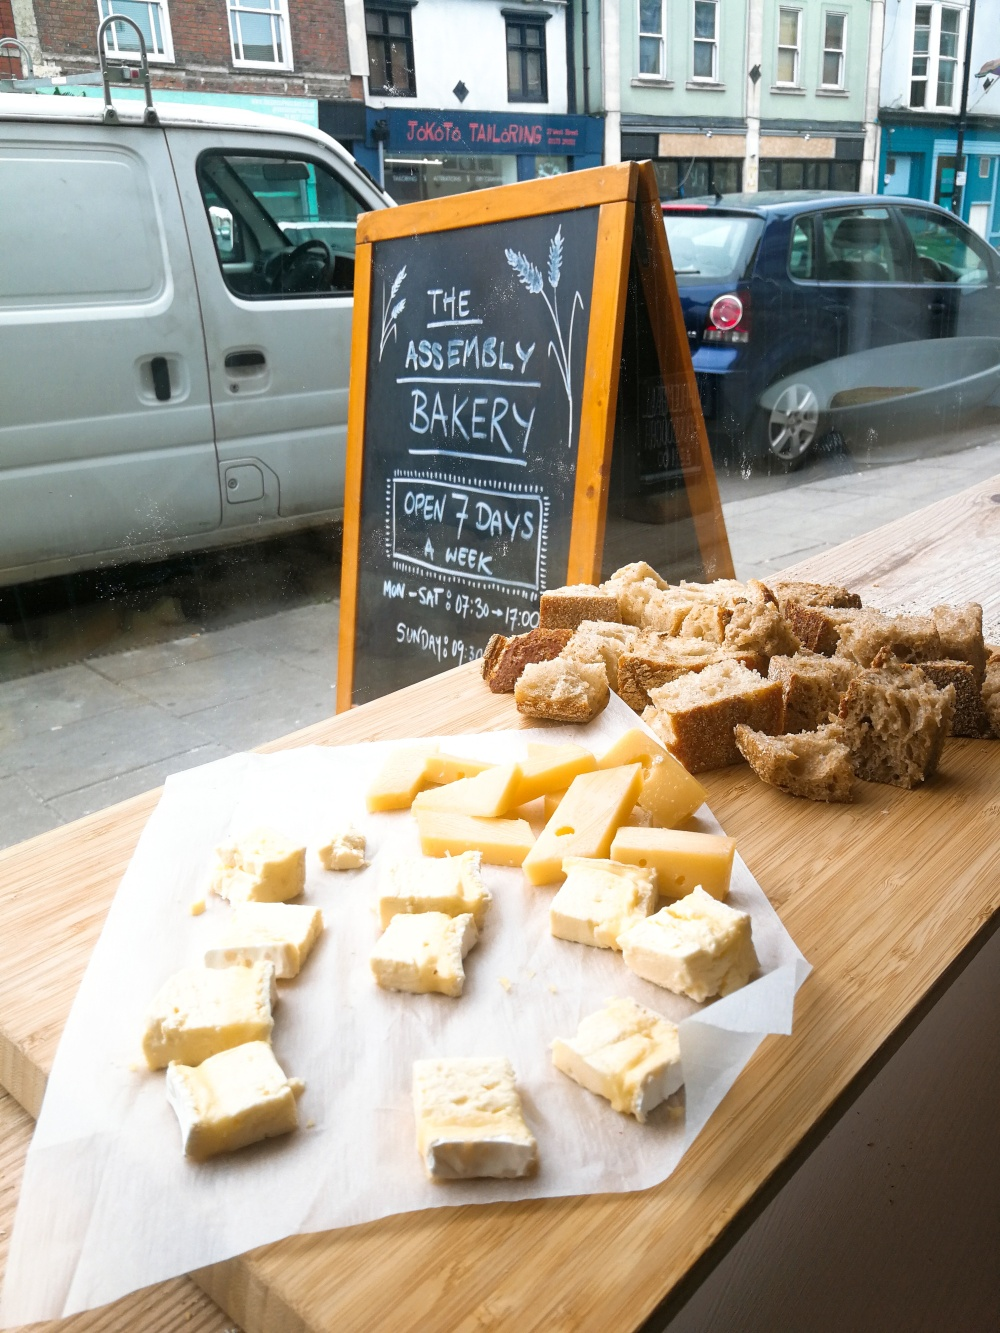 Bites of cheese and chunks of sourdough on a wooden board in a window